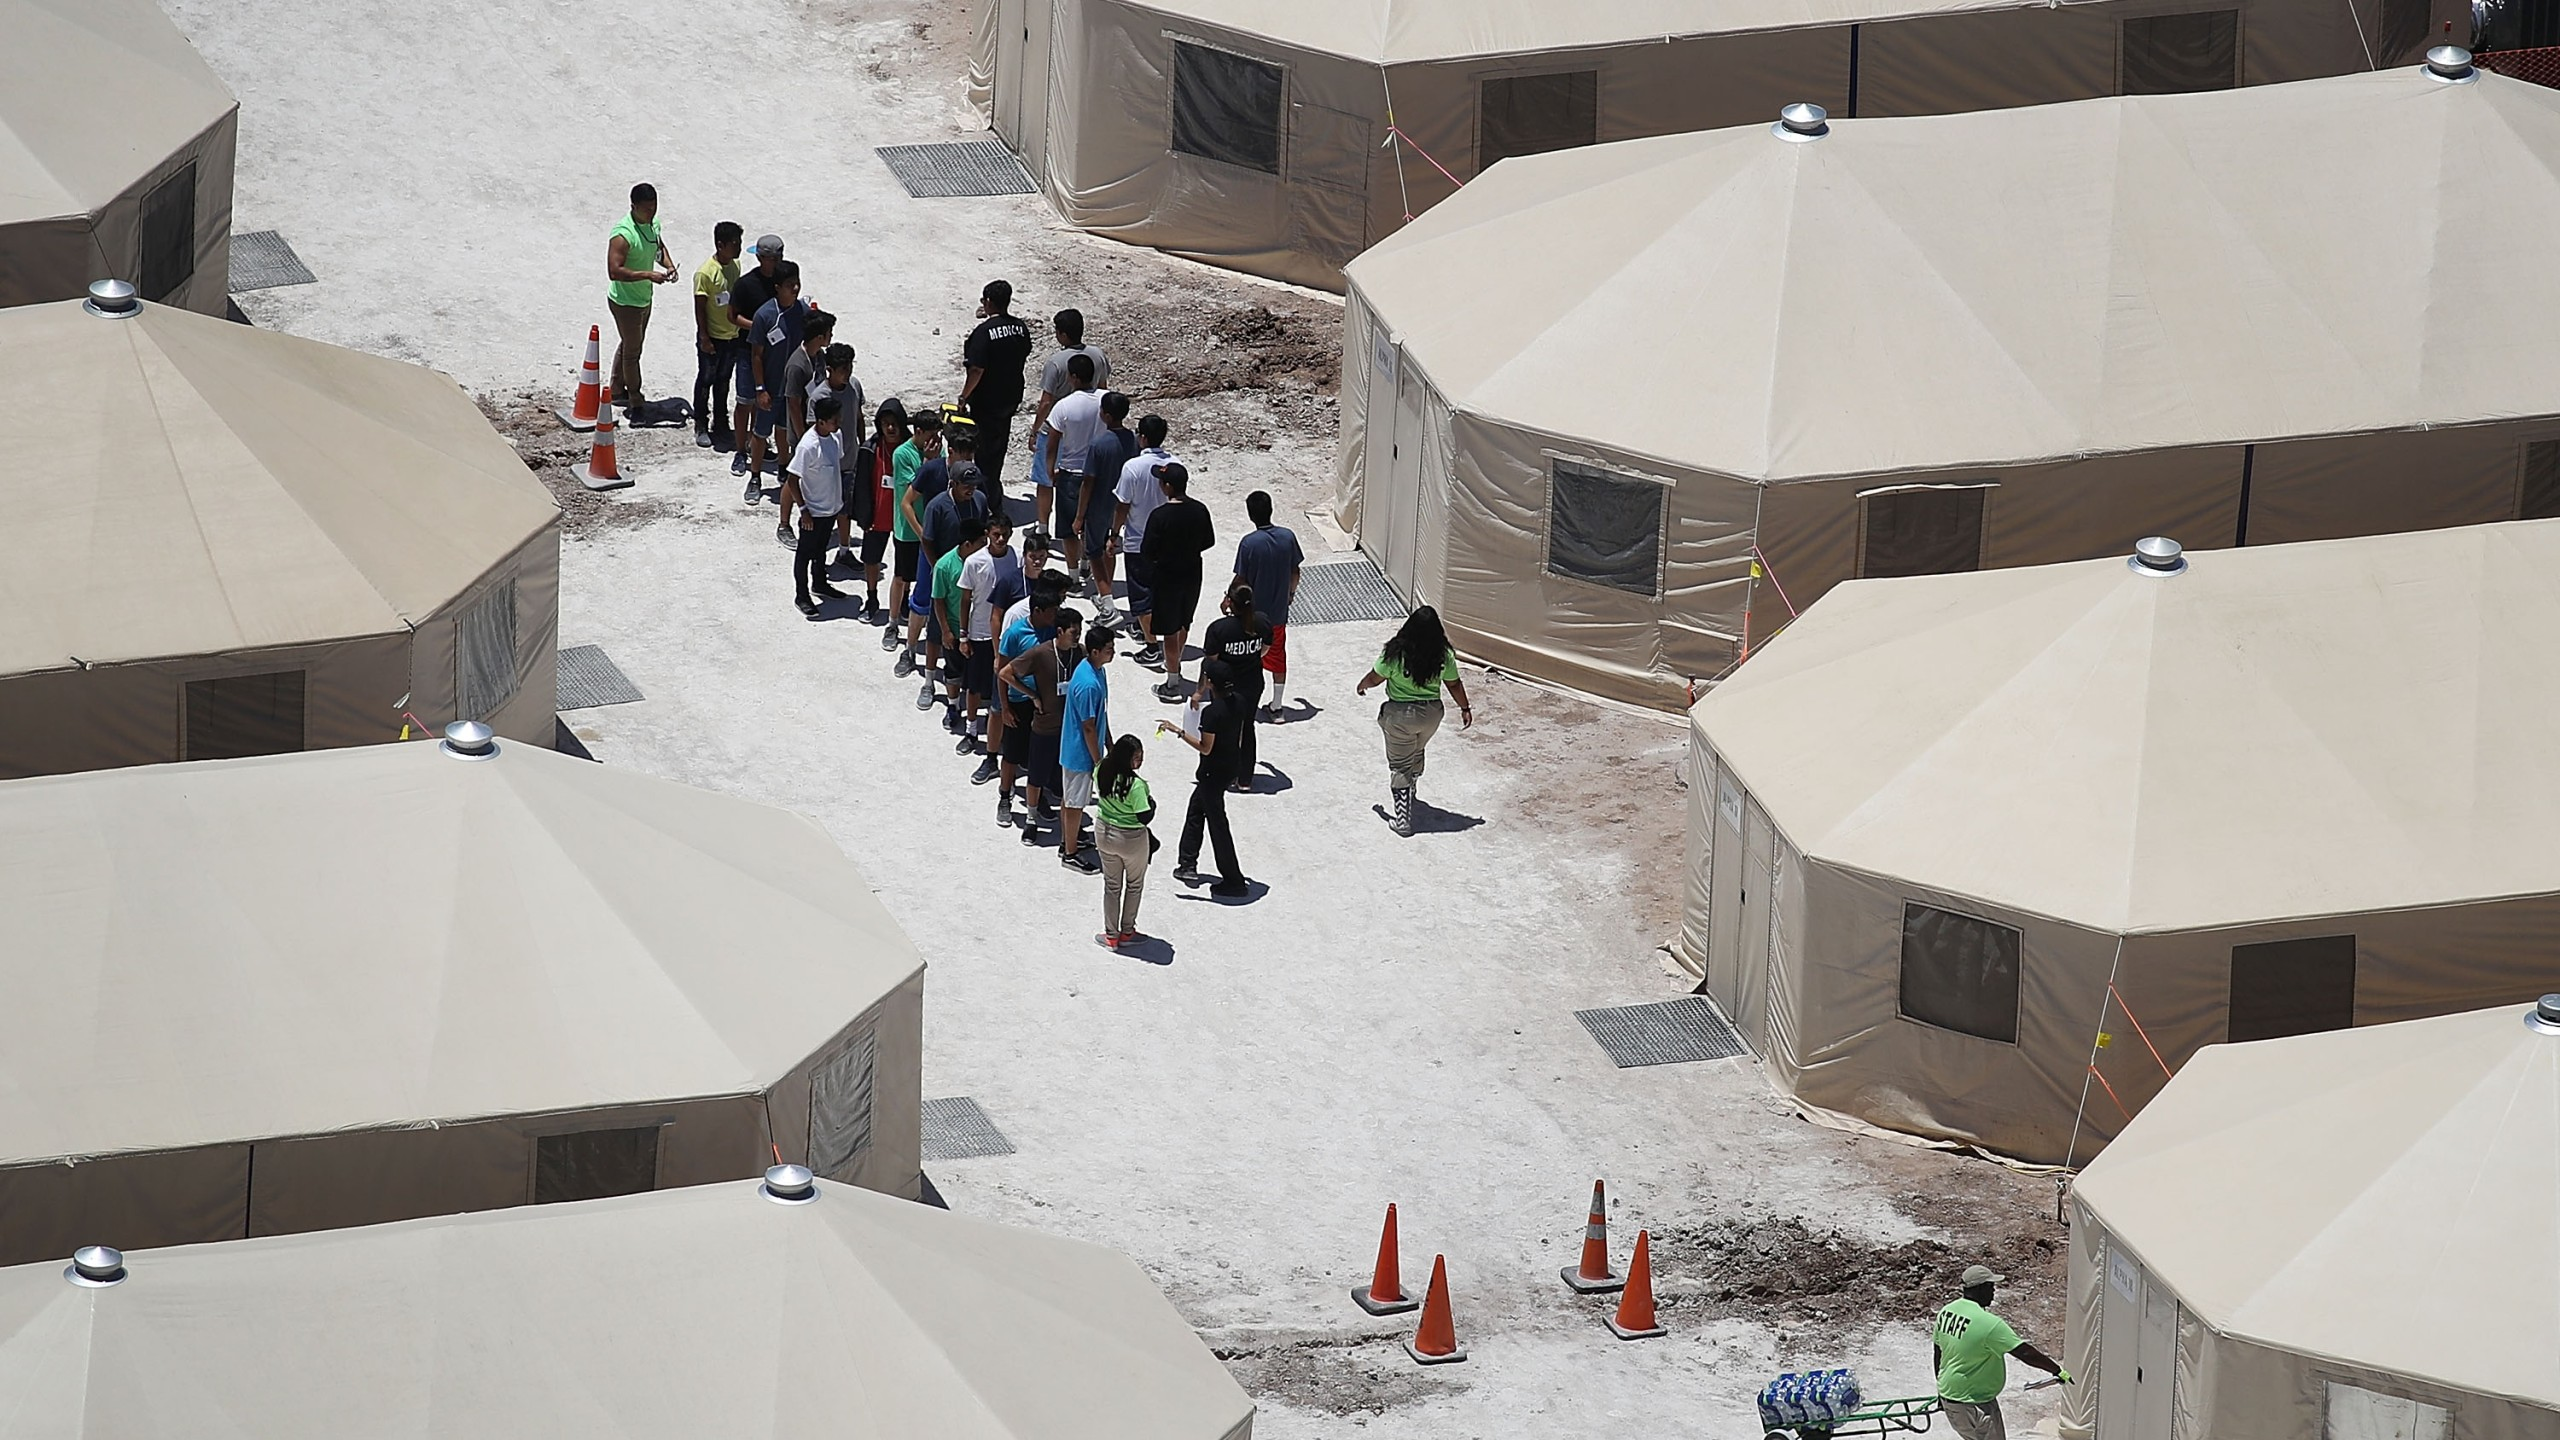 Children and workers are seen at a tent encampment recently built near the Tornillo Port of Entry on June 19, 2018 in Tornillo, Texas. The Trump administration is using the Tornillo tent facility to house immigrant children separated from their parents after they were caught entering the U.S. under the administration's zero tolerance policy. (Credit: Joe Raedle/Getty Images)